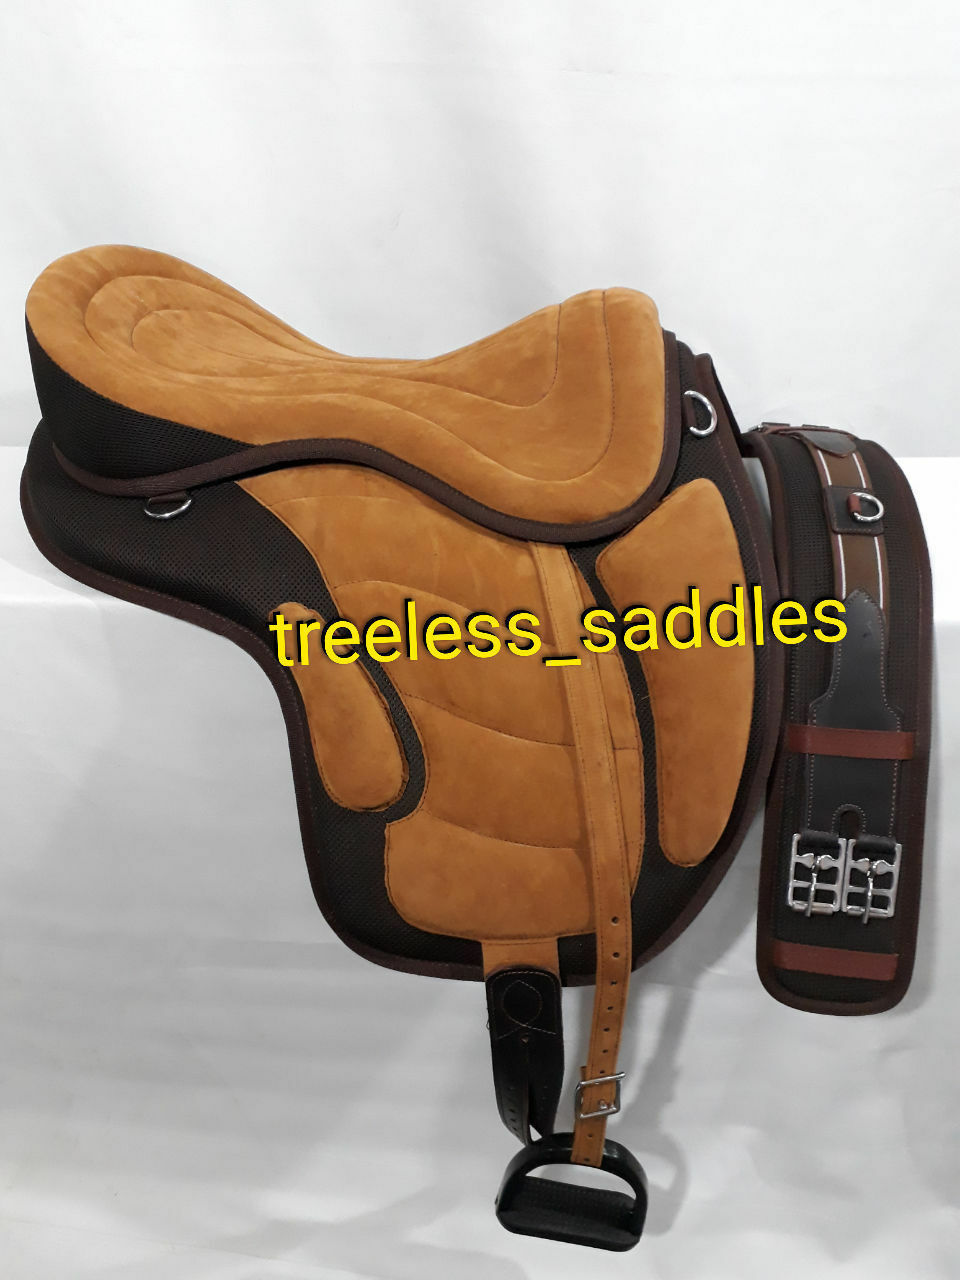 All Purpose   Freemax saddle Synthetic  brown Tan color Saddle all size